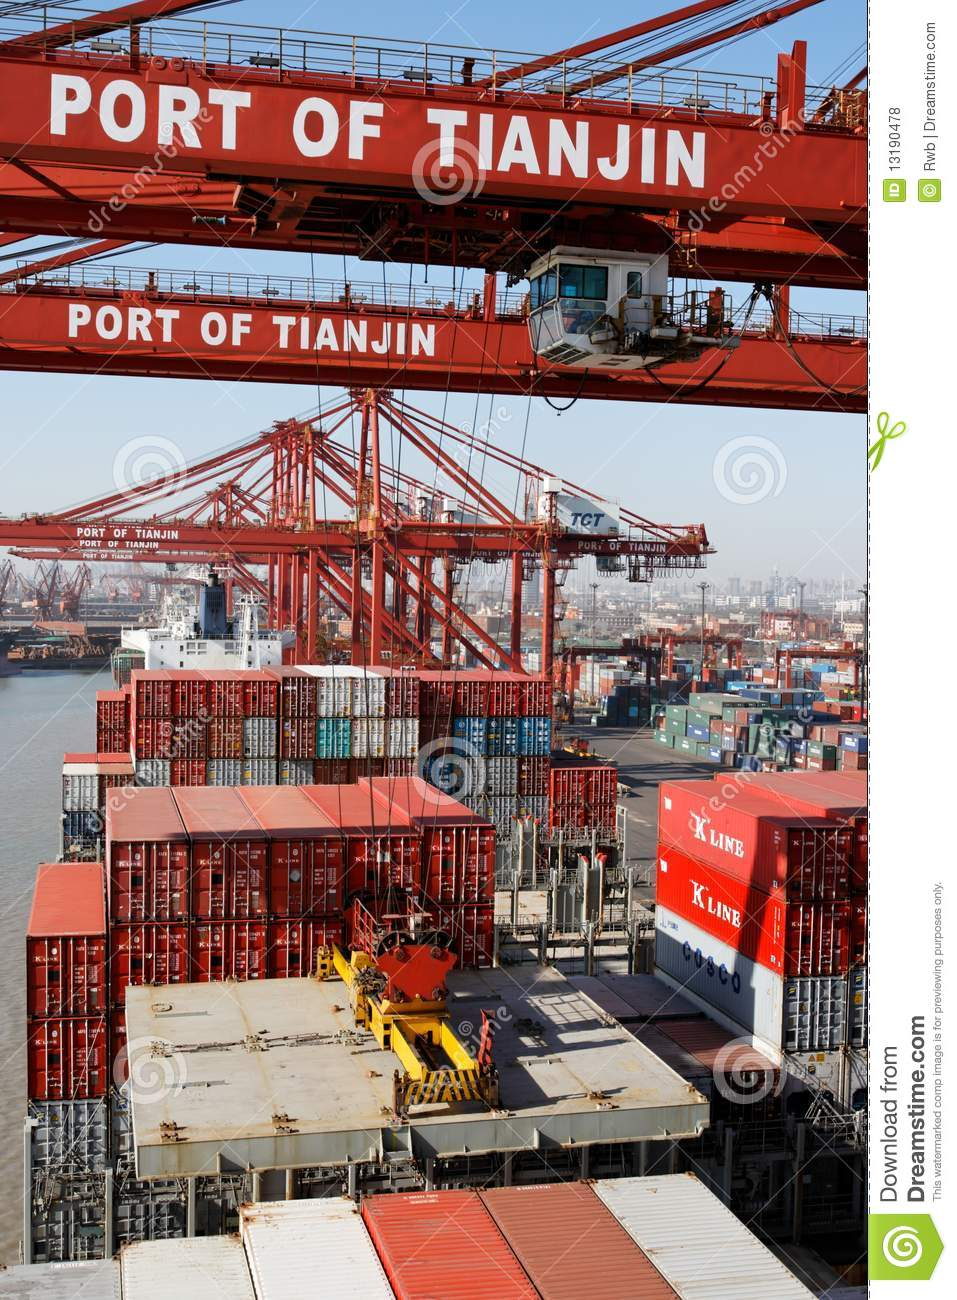 Cargo operations on a container ship in China